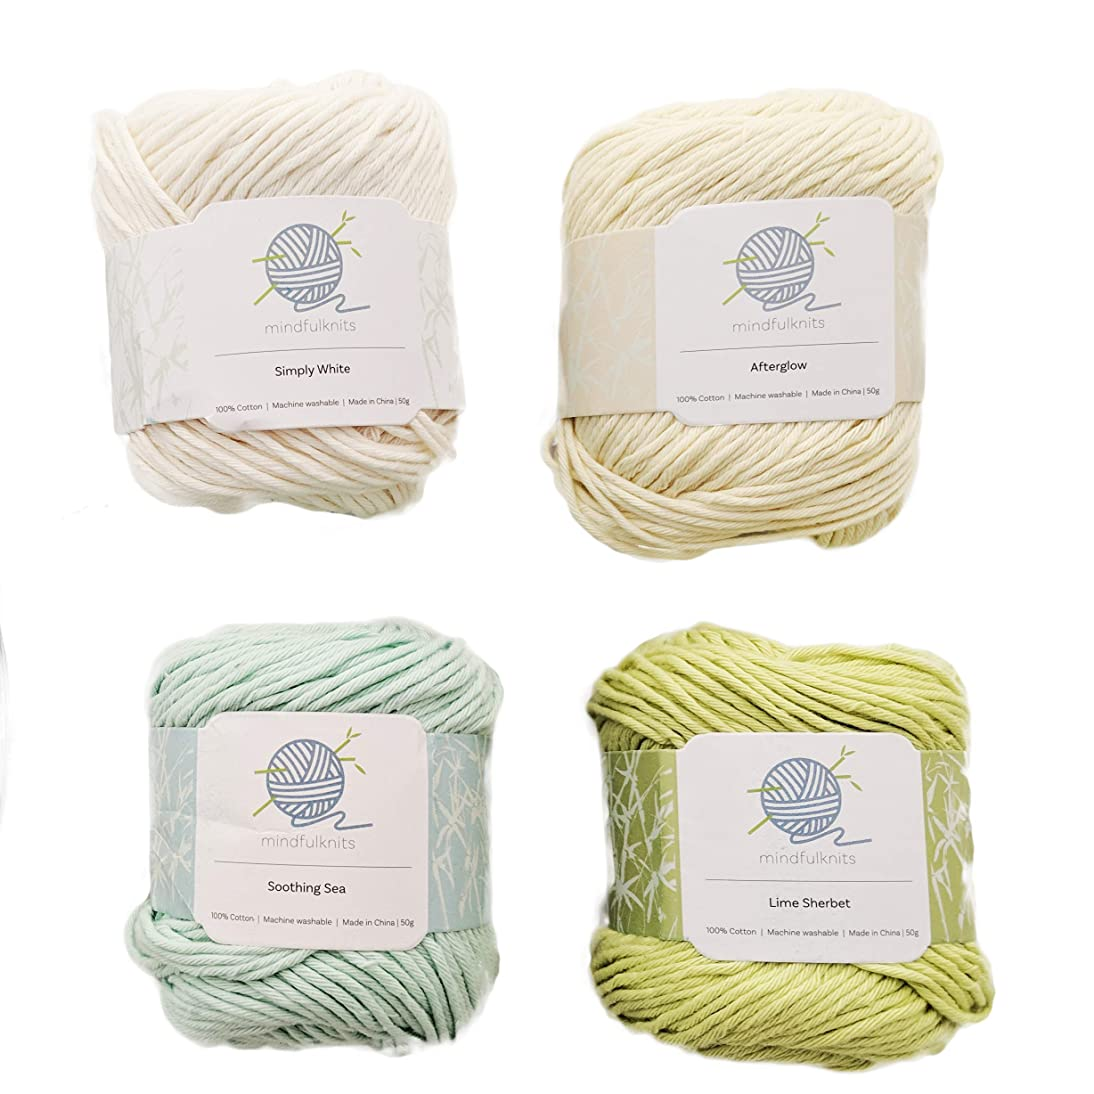 Knitting Yarn, Crochet Yarn, Mindfulness and Relaxation 100 Percent Cotton Yarn, Multicolor 4-Pack Medium Number 4 Worsted Bundle, Soft & Gentle for Baby Items – by mindfulknits